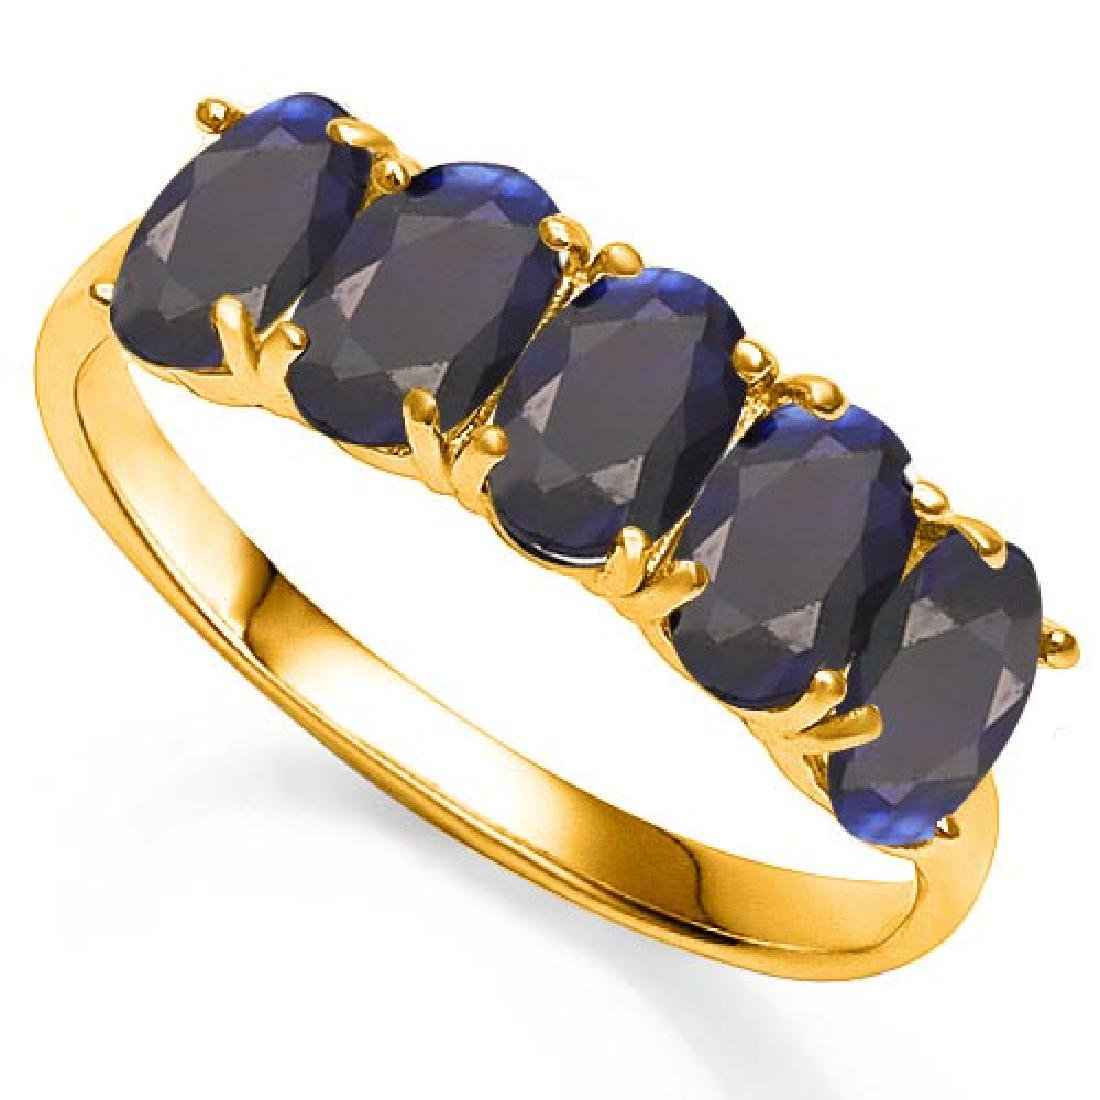 3.03 CT GENUINE BLACK SAPPHIRE 10KT SOLID YELLOW GOLD R